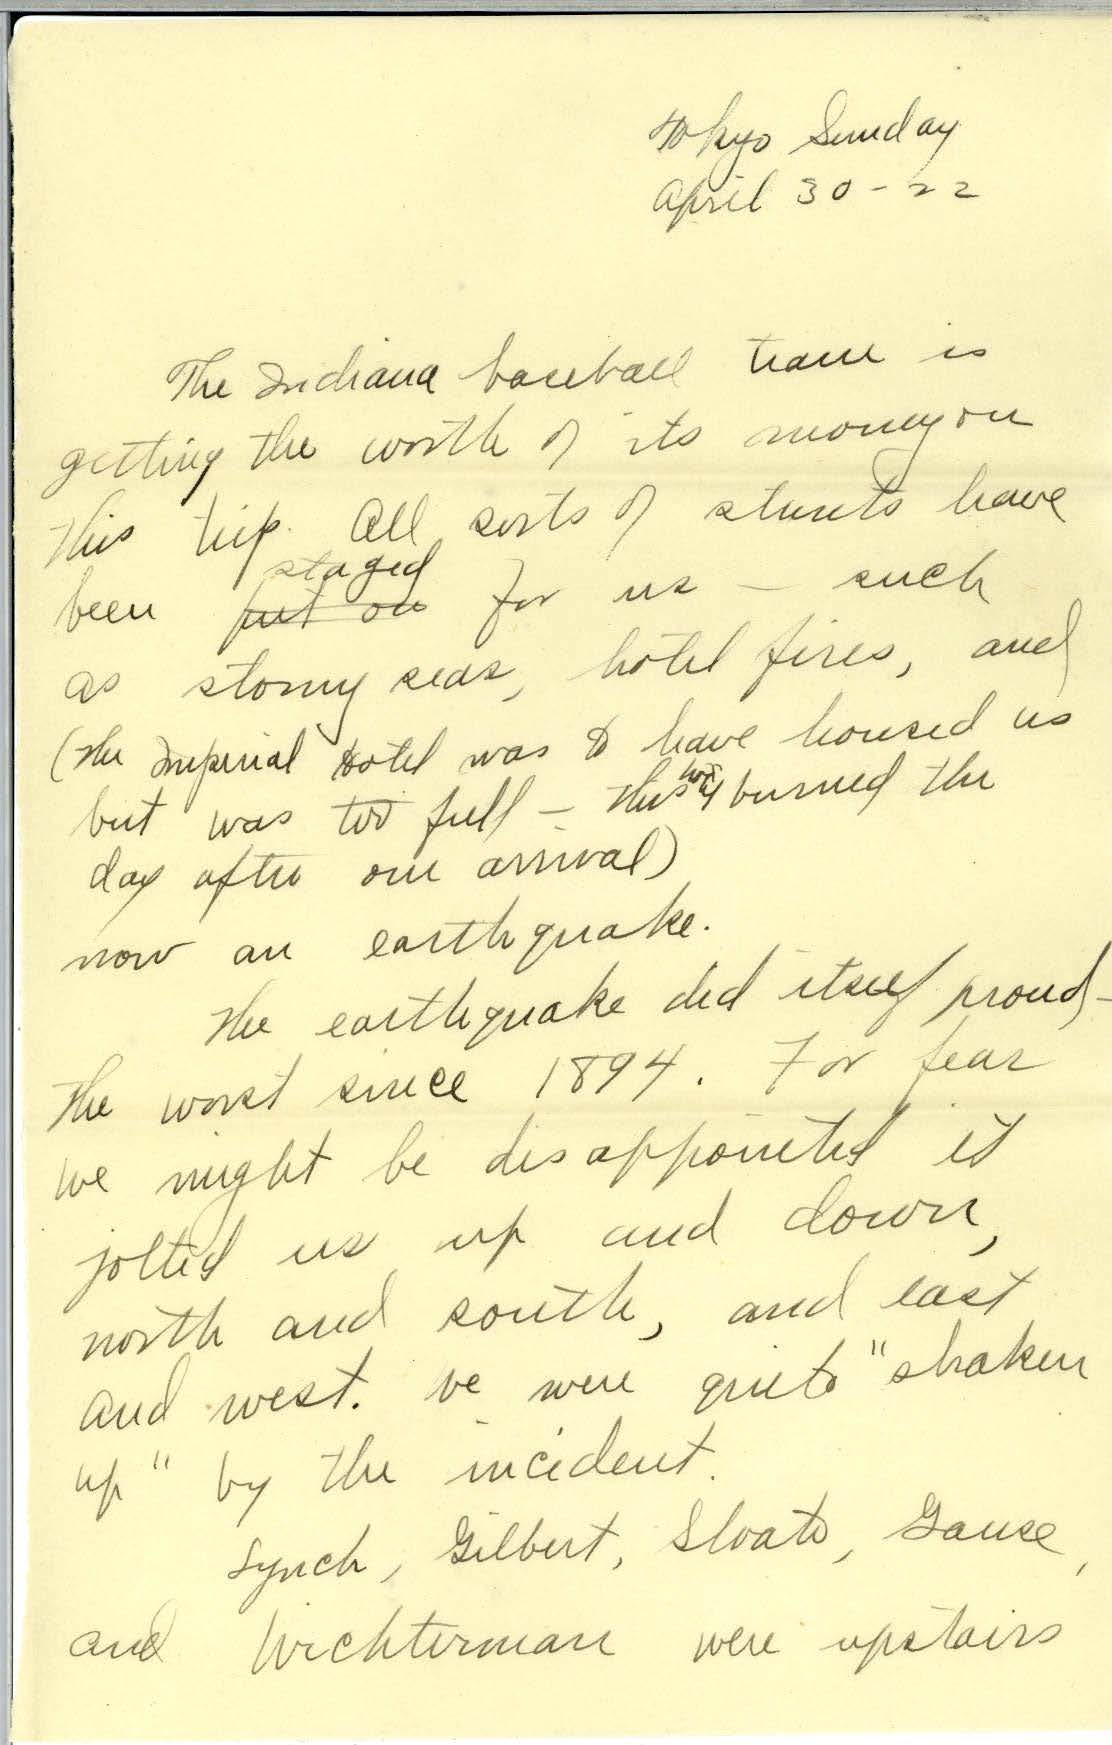 Scan of page 1 of Edna Hatfield's April 30, 1922 letter to Frank R. Elliot - written in cursive handwriting.